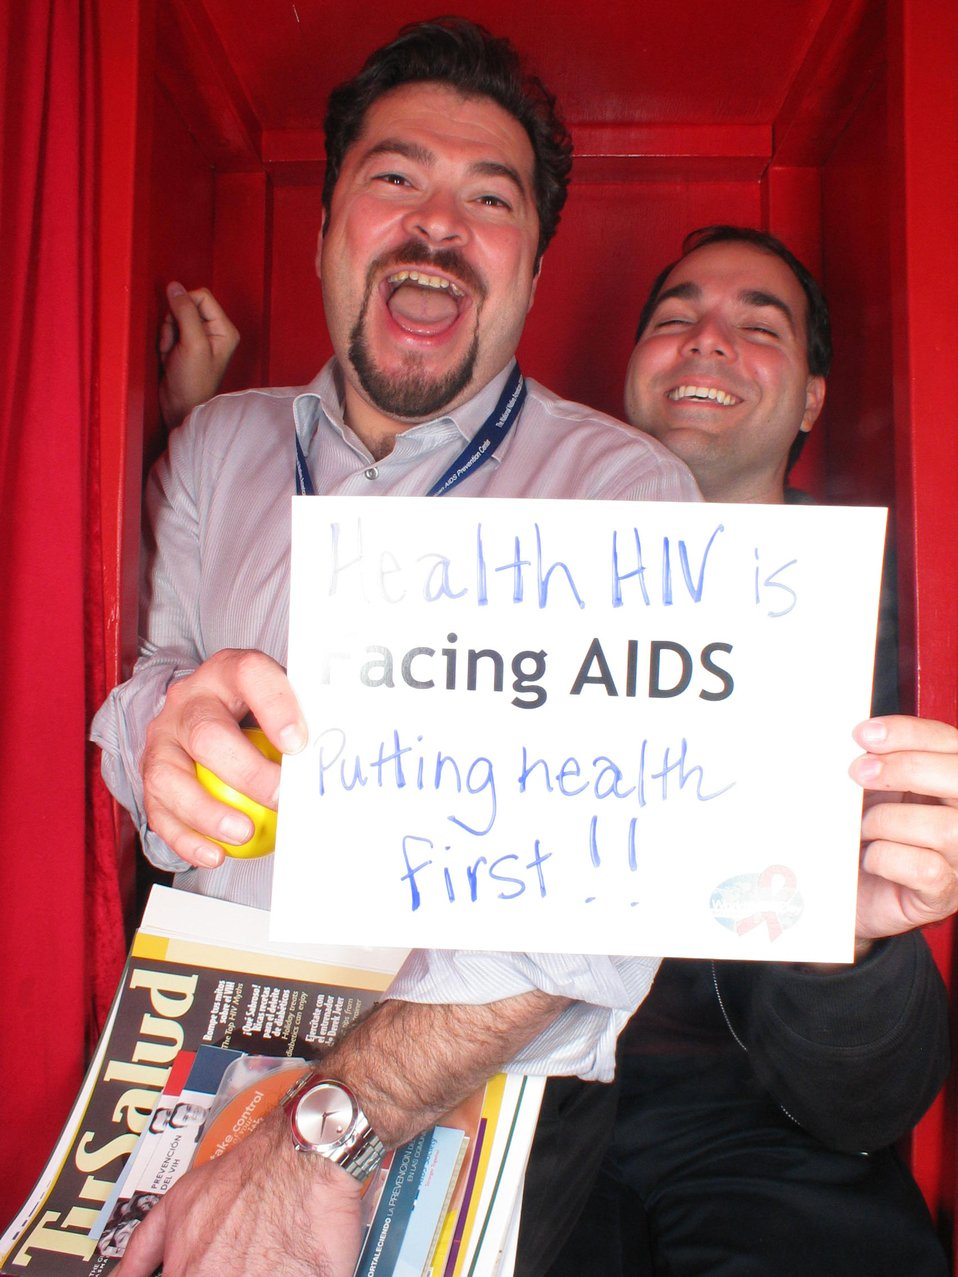 Facing AIDS is putting health first!